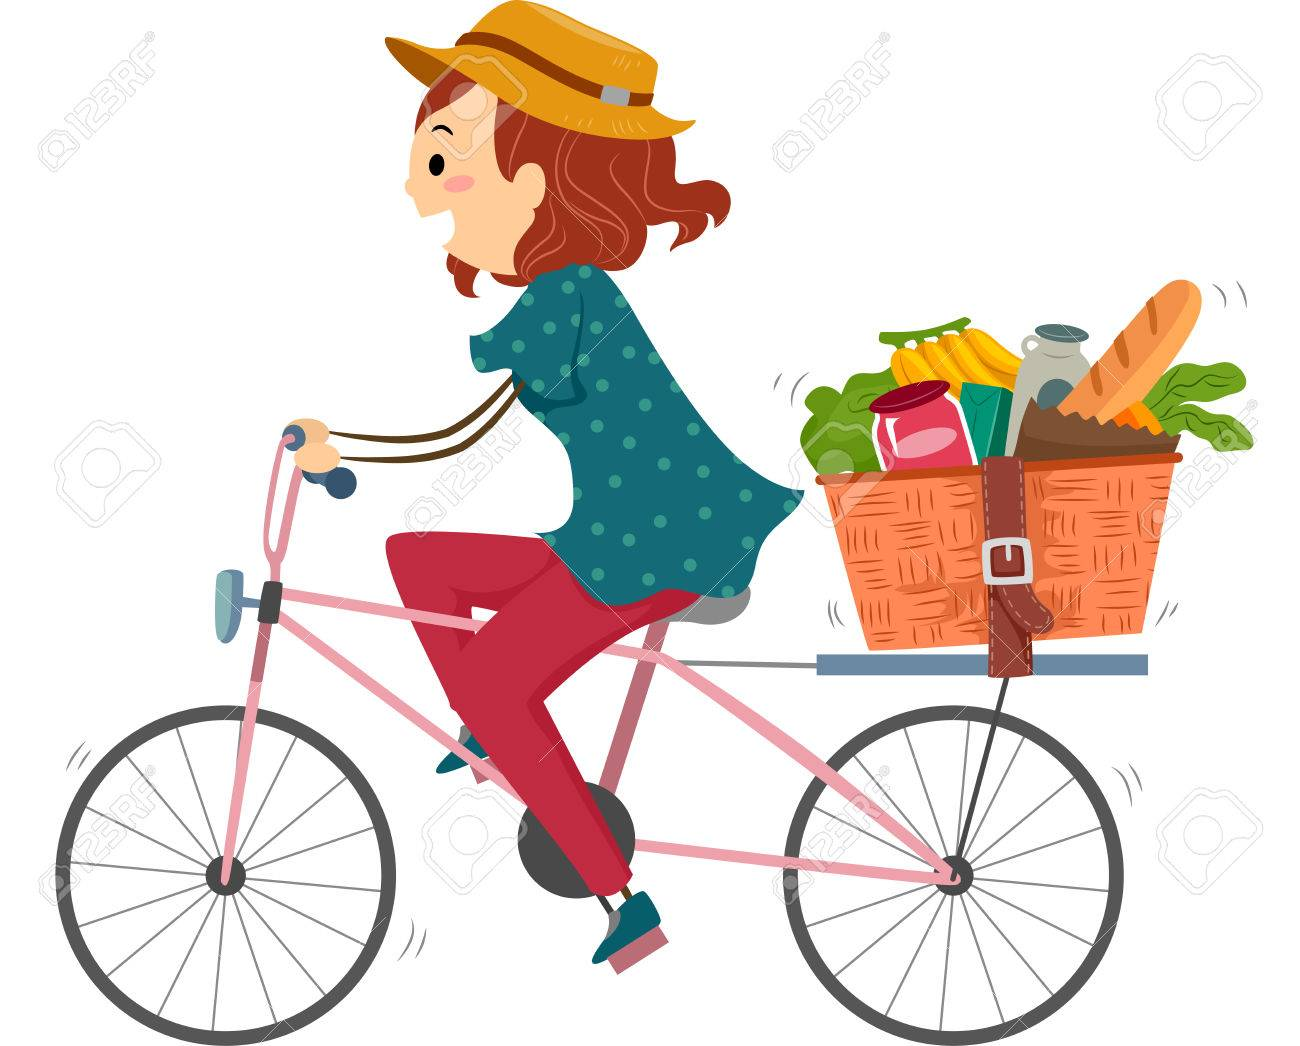 Illustration of a Woman on a Bike Returning from Grocery Shopping - 50784270